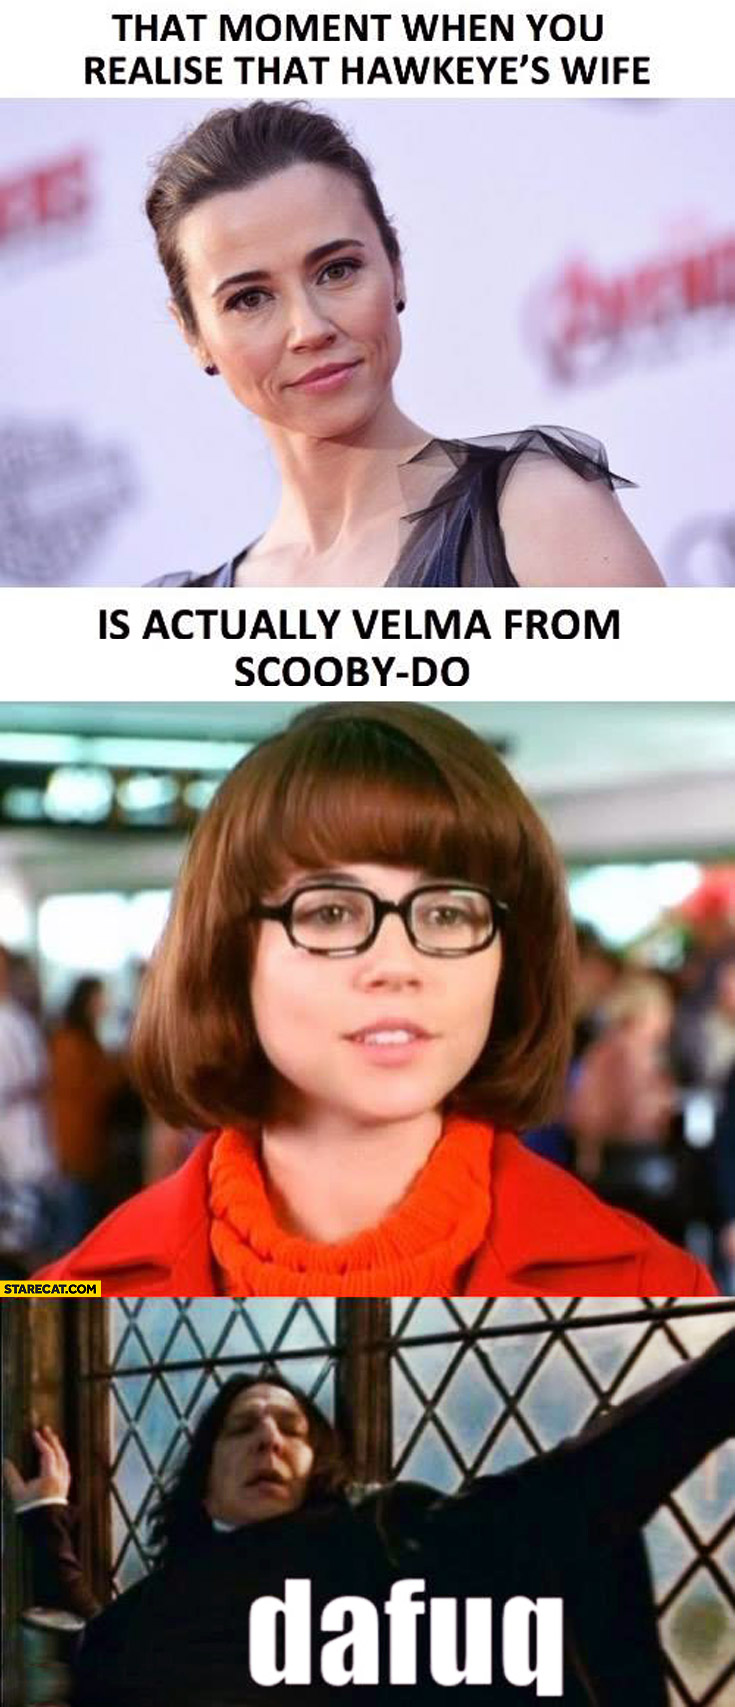 That moment you realise that Hawkeye's wife is actually Velma from Scooby-Doo